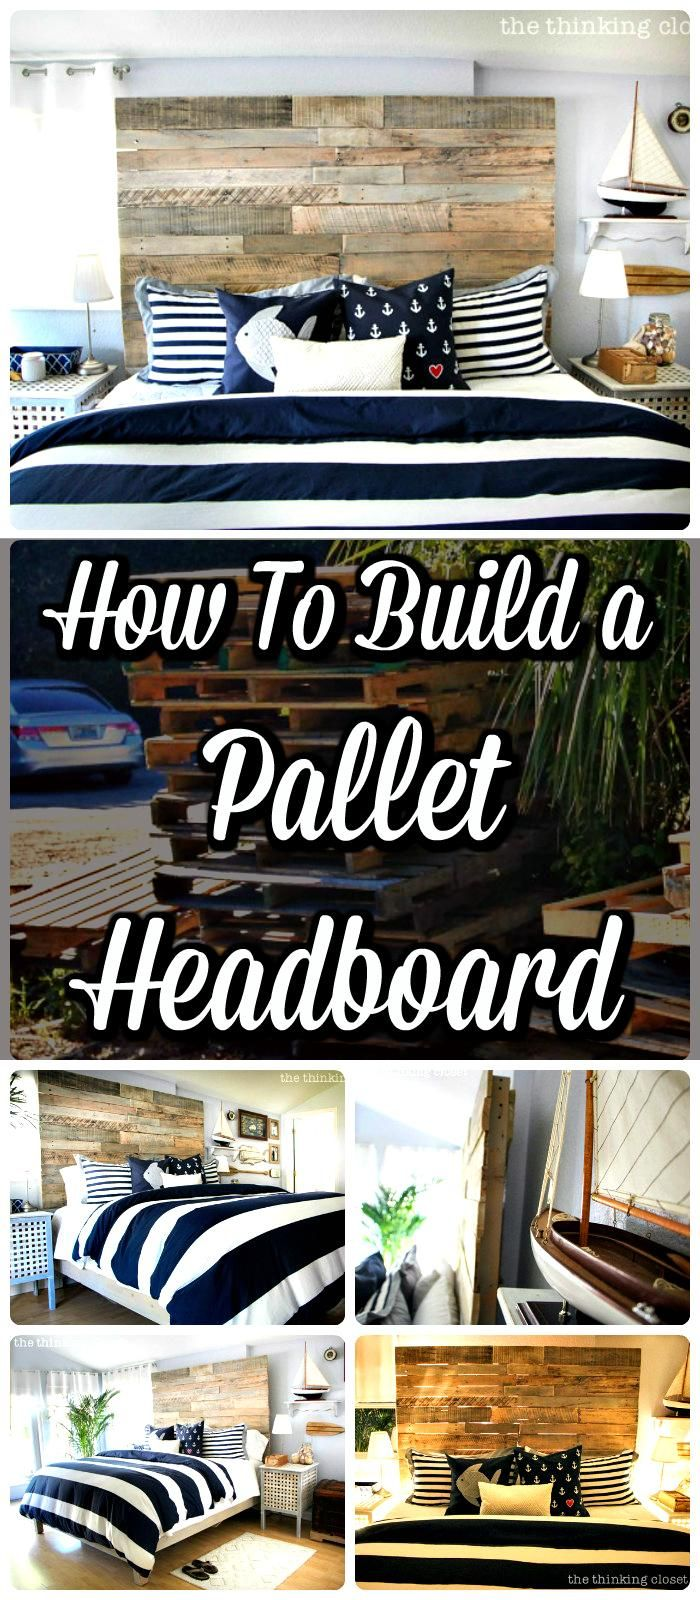 Rustic DIY Pallet Headboard Tutorial - 150 Best DIY Pallet Projects and Pallet Furniture Crafts - Page 26 of 75 - DIY & Crafts